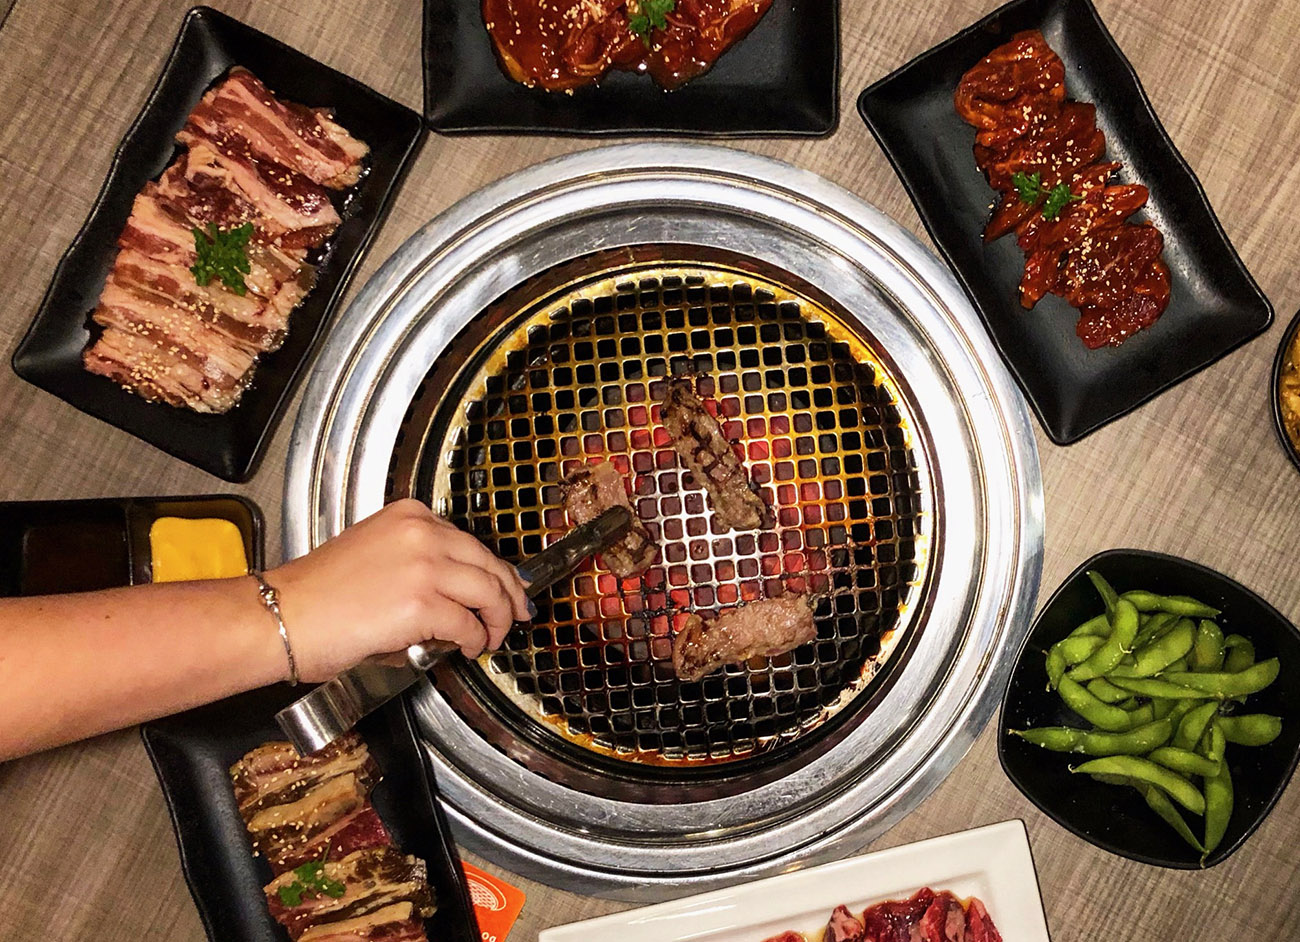 View 19 photos: Gyu-Kaku, a Japanese BBQ restaurant with tableside grilling, now open in Uptown